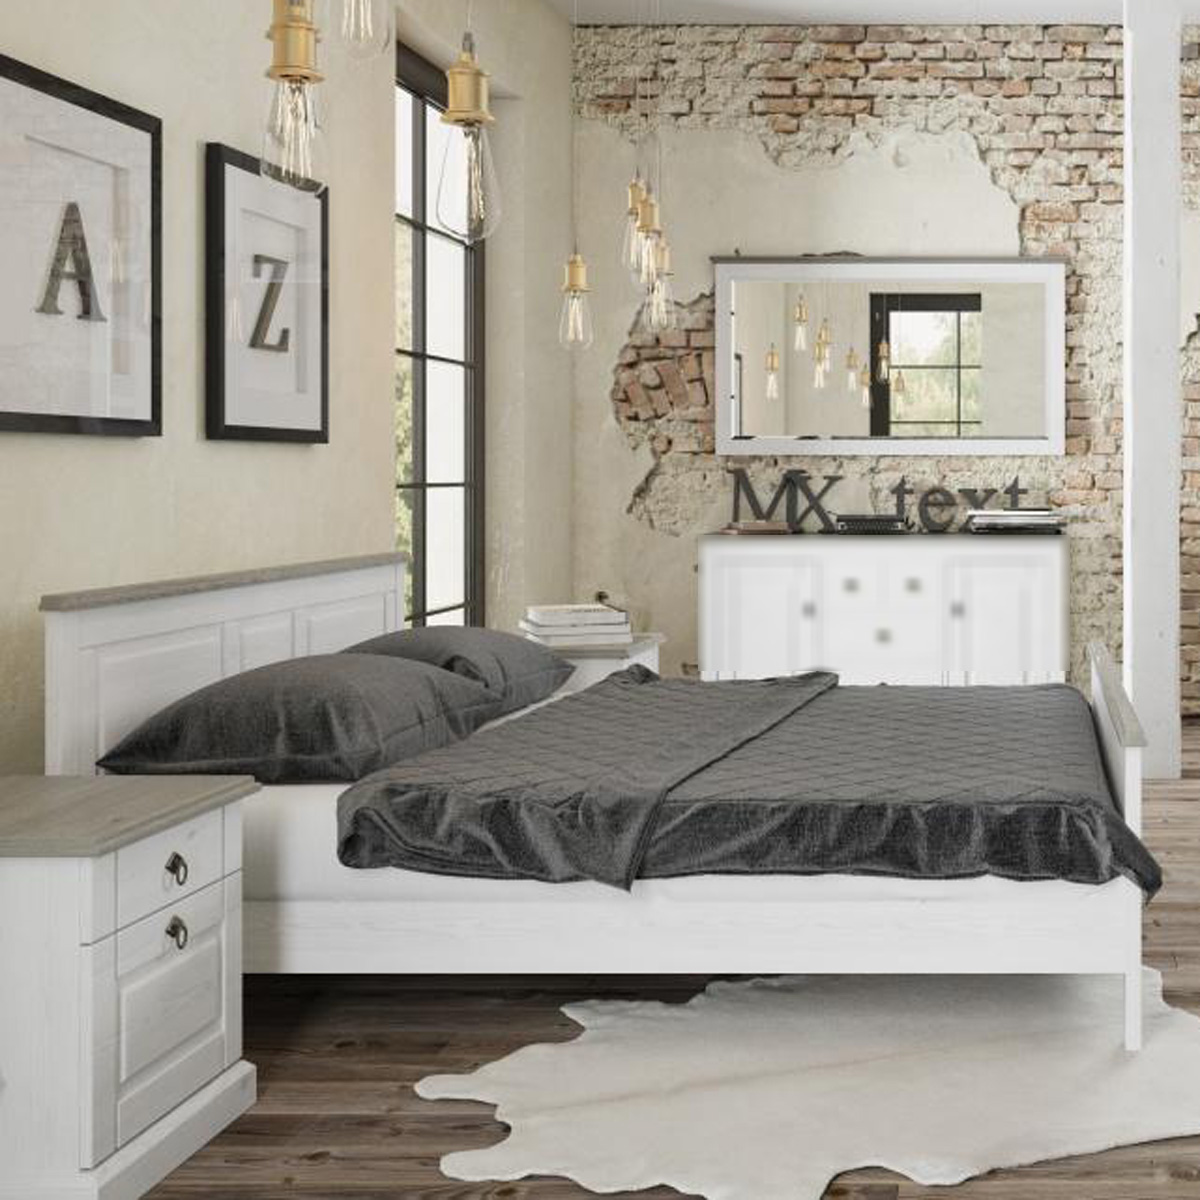 bettanlage lindo pinie wei taupe mit bett und 2 nachttischen im landhausstil ebay. Black Bedroom Furniture Sets. Home Design Ideas